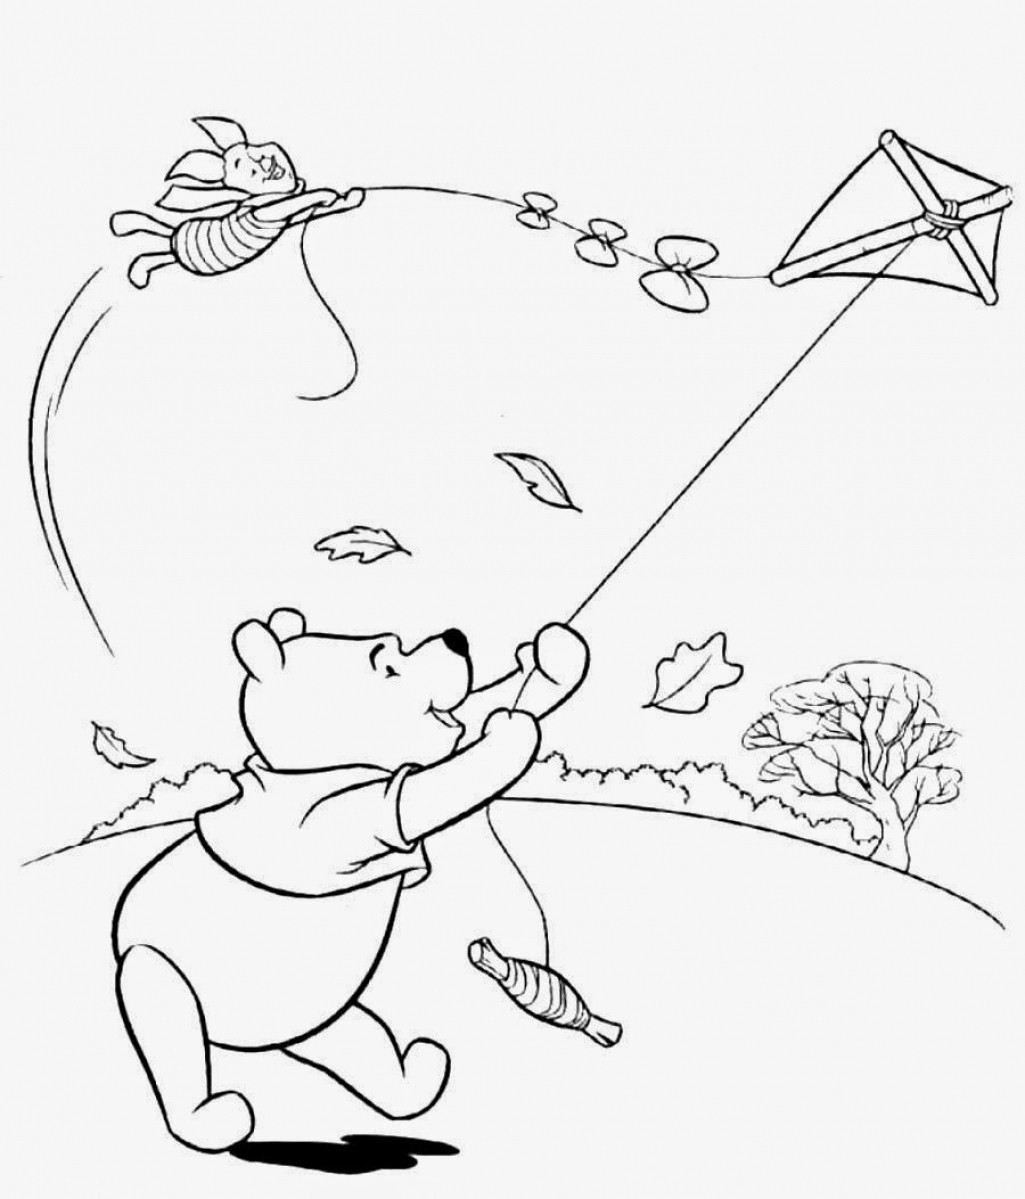 Windy Day Coloring Pages At Getcolorings